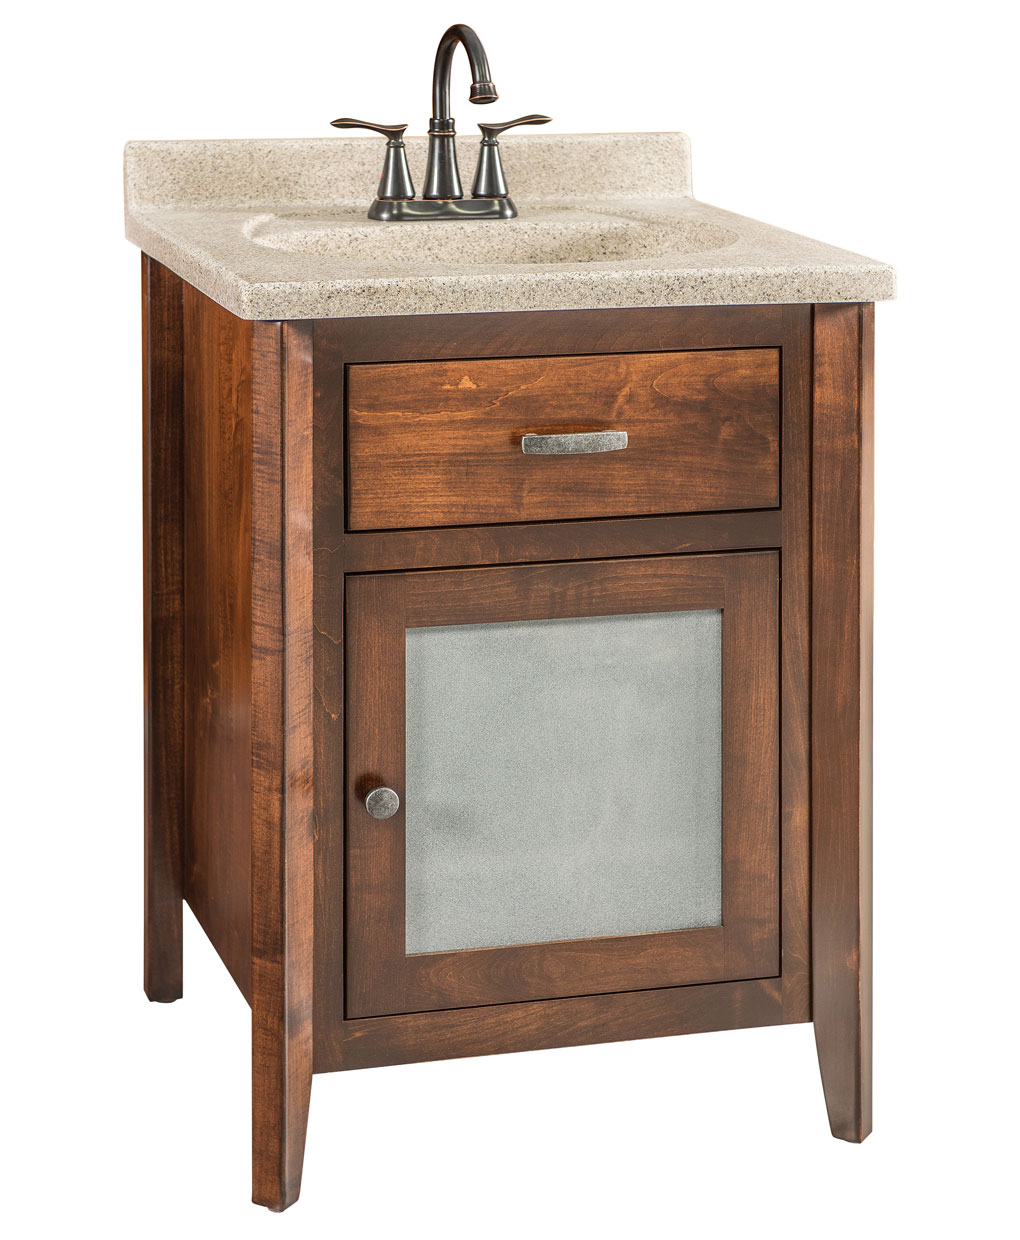 Garland Amish Bathroom Vanity Amish Direct Furniture